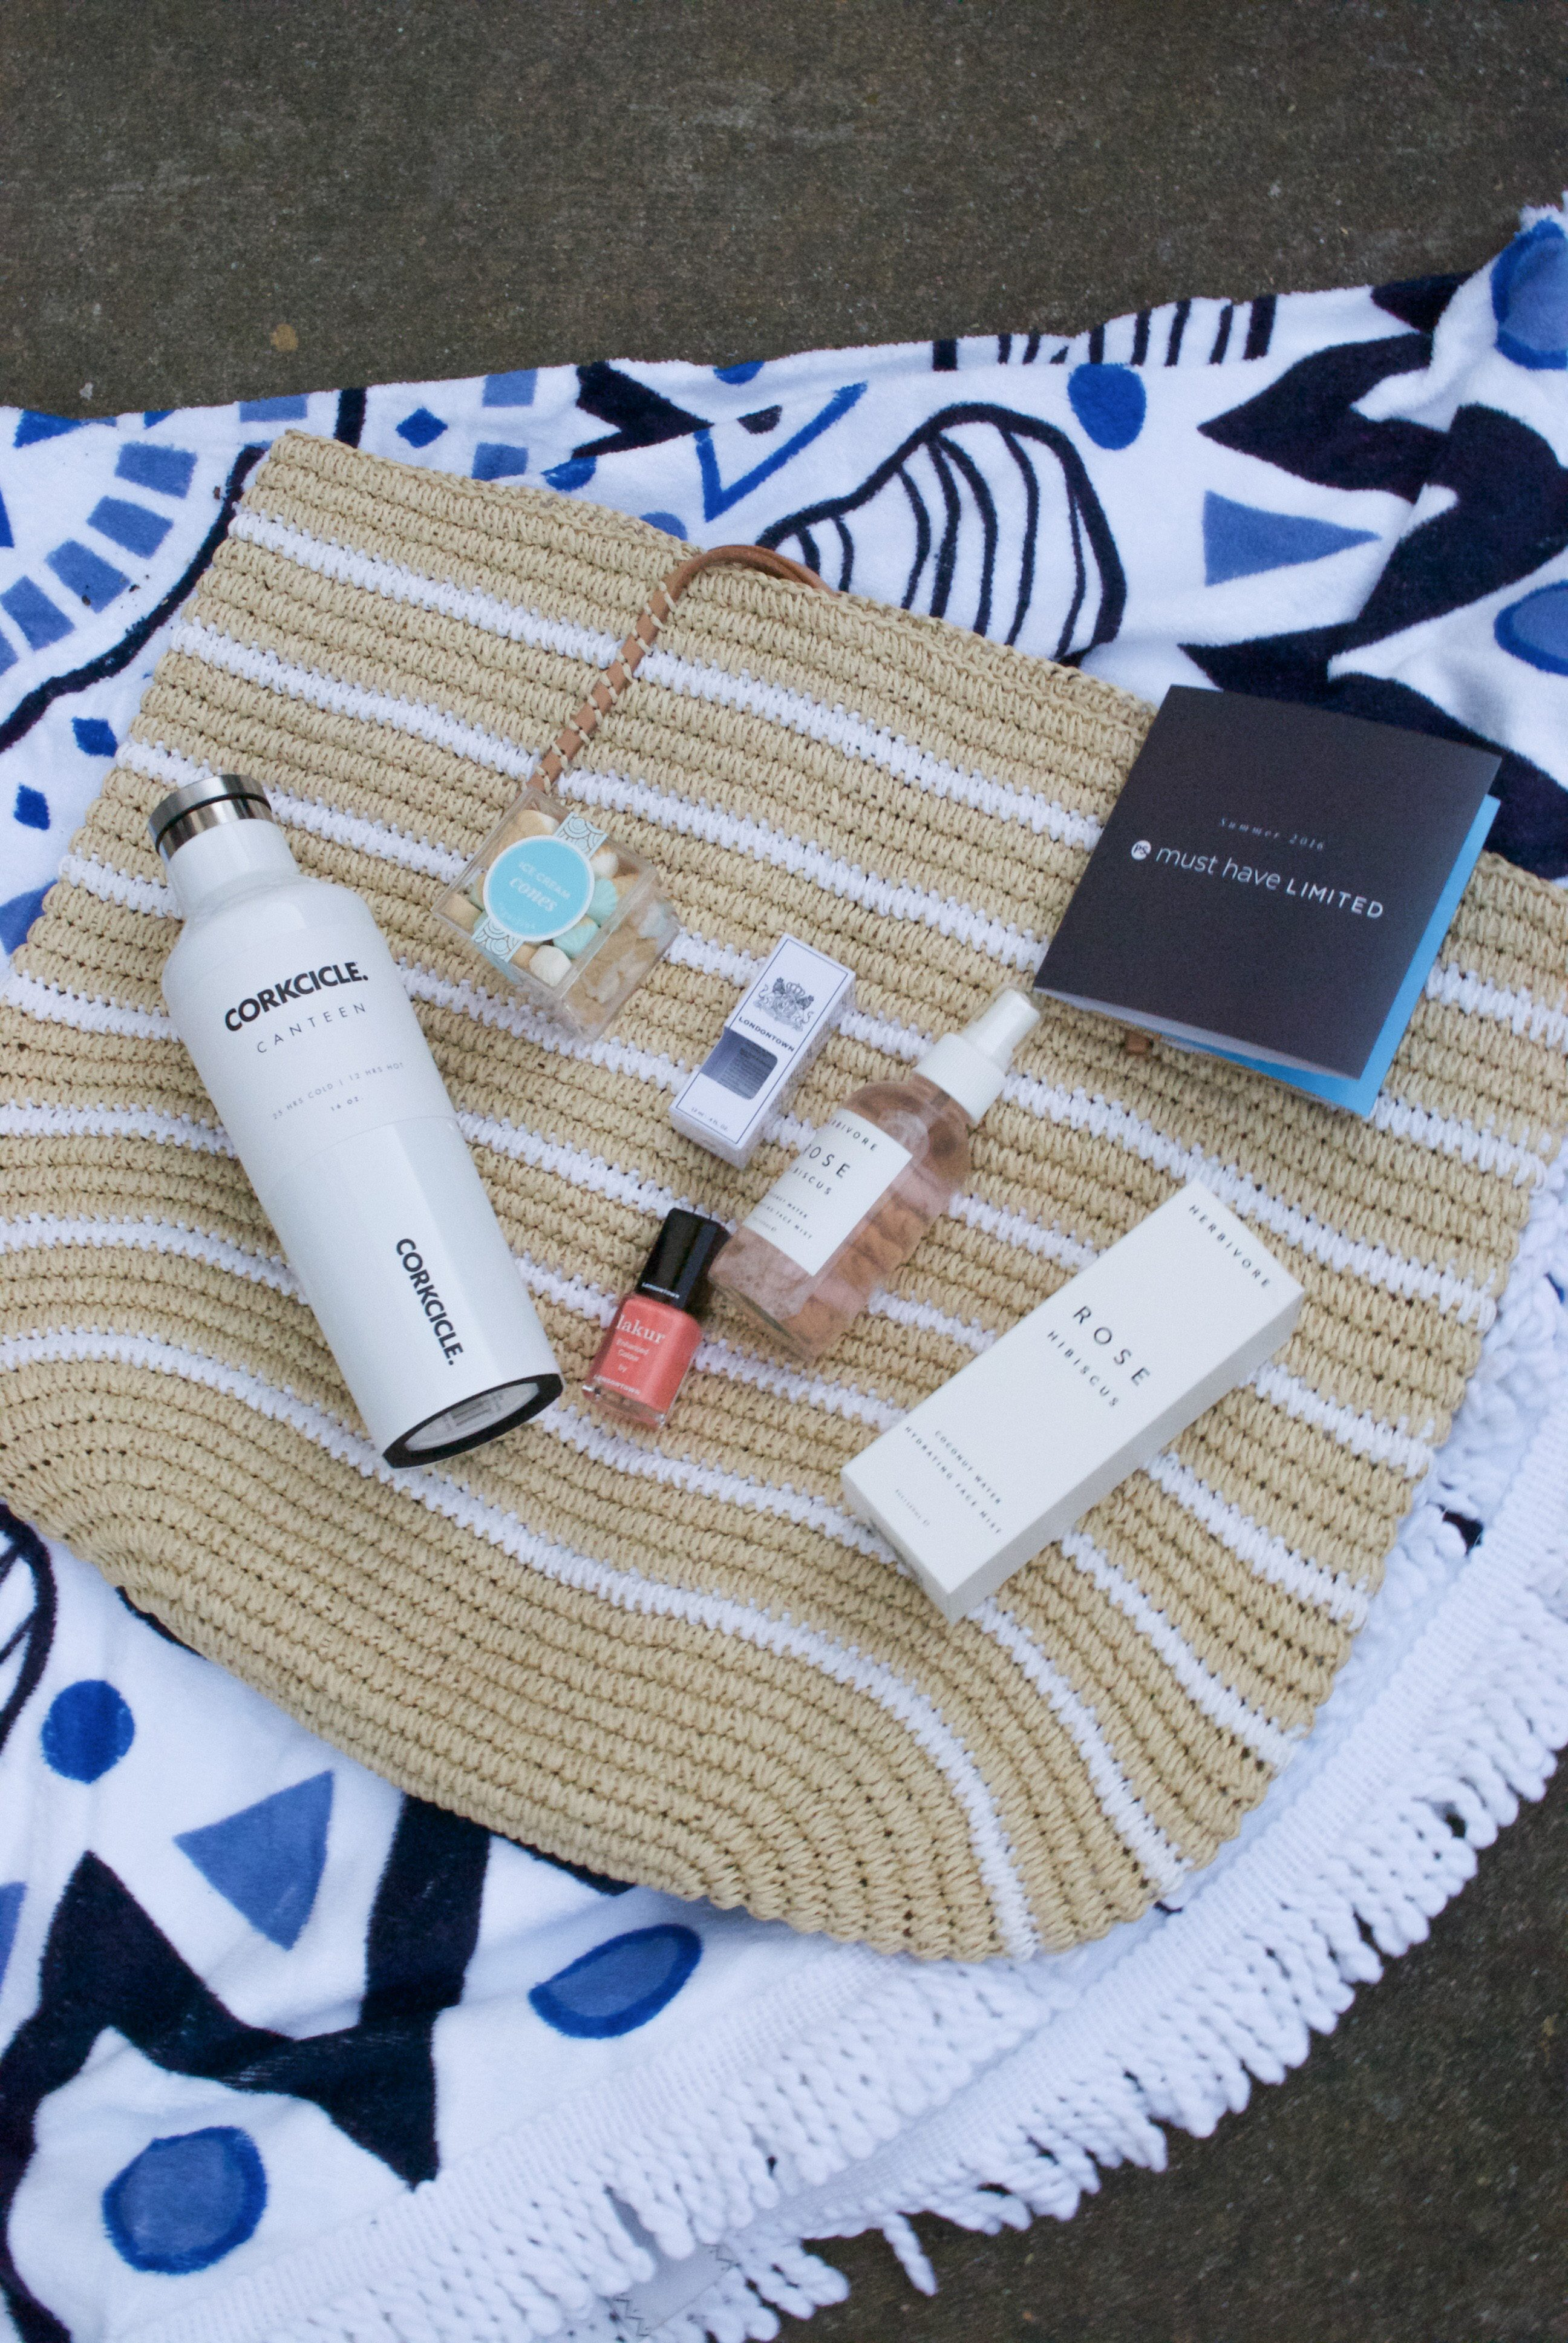 PopSugar Summer 2016 Must Have Box Reveal (24 of 25)